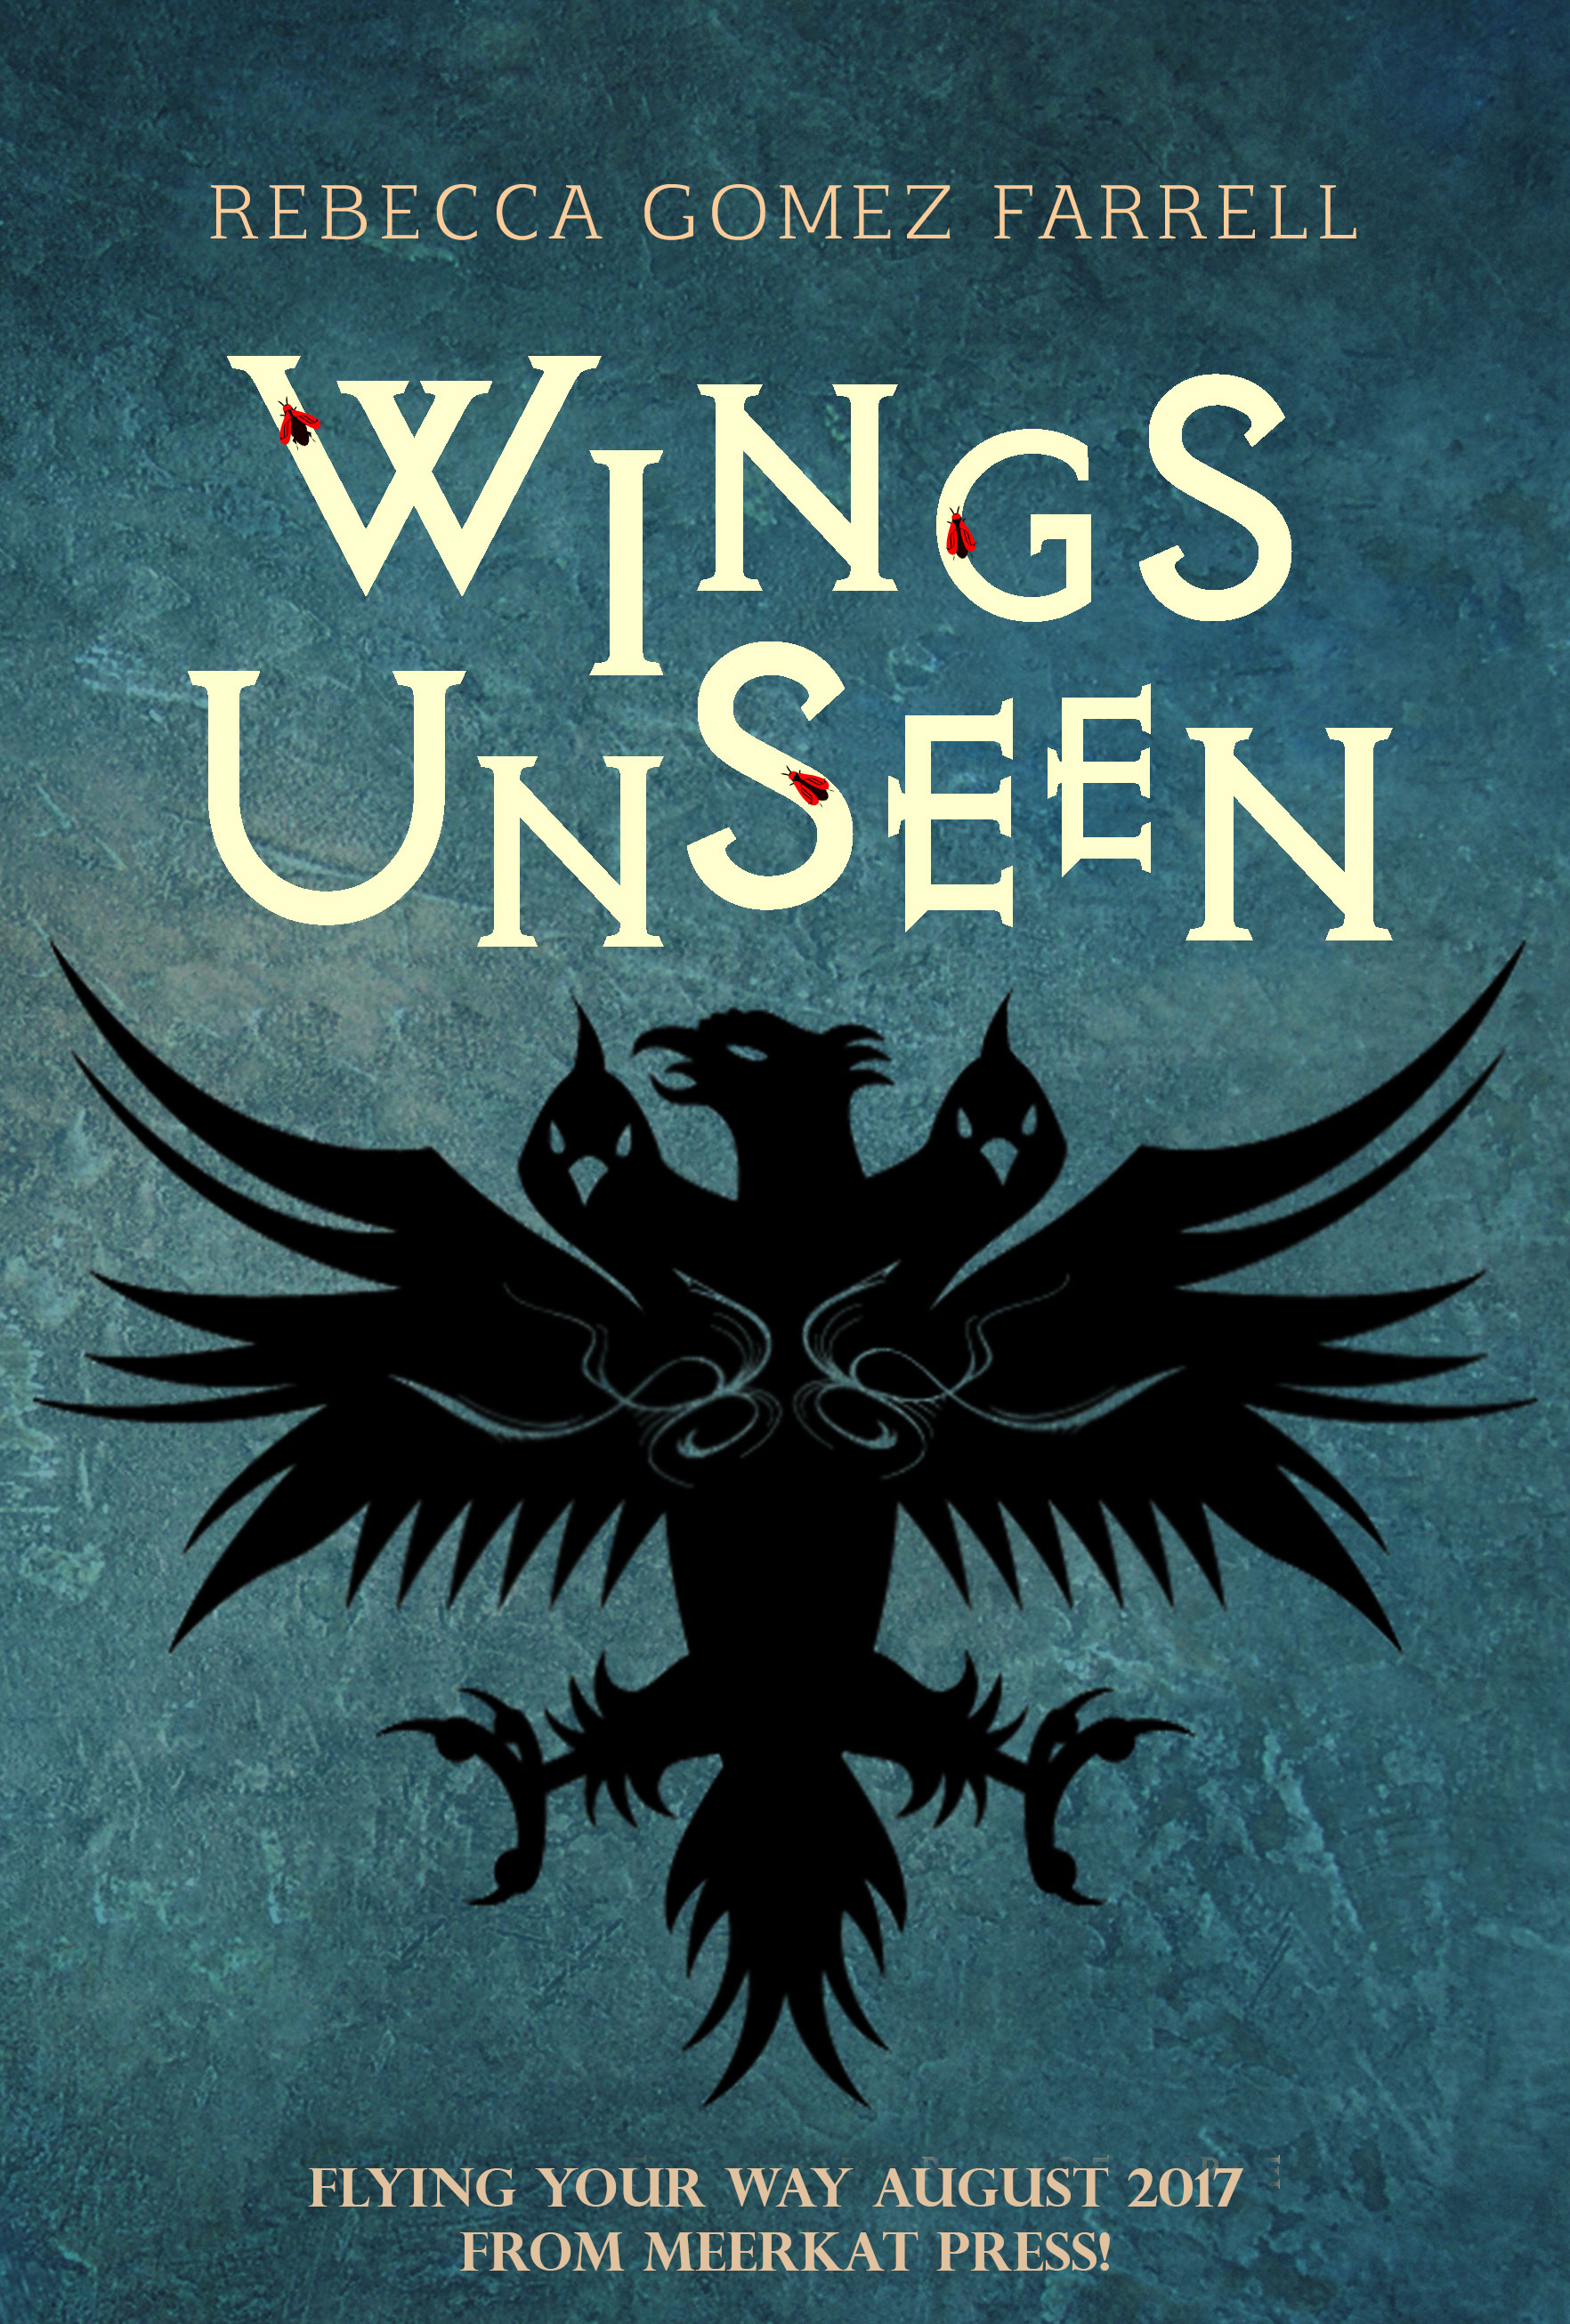 Pre-order my first book! Wings Unseen flying your way in August.